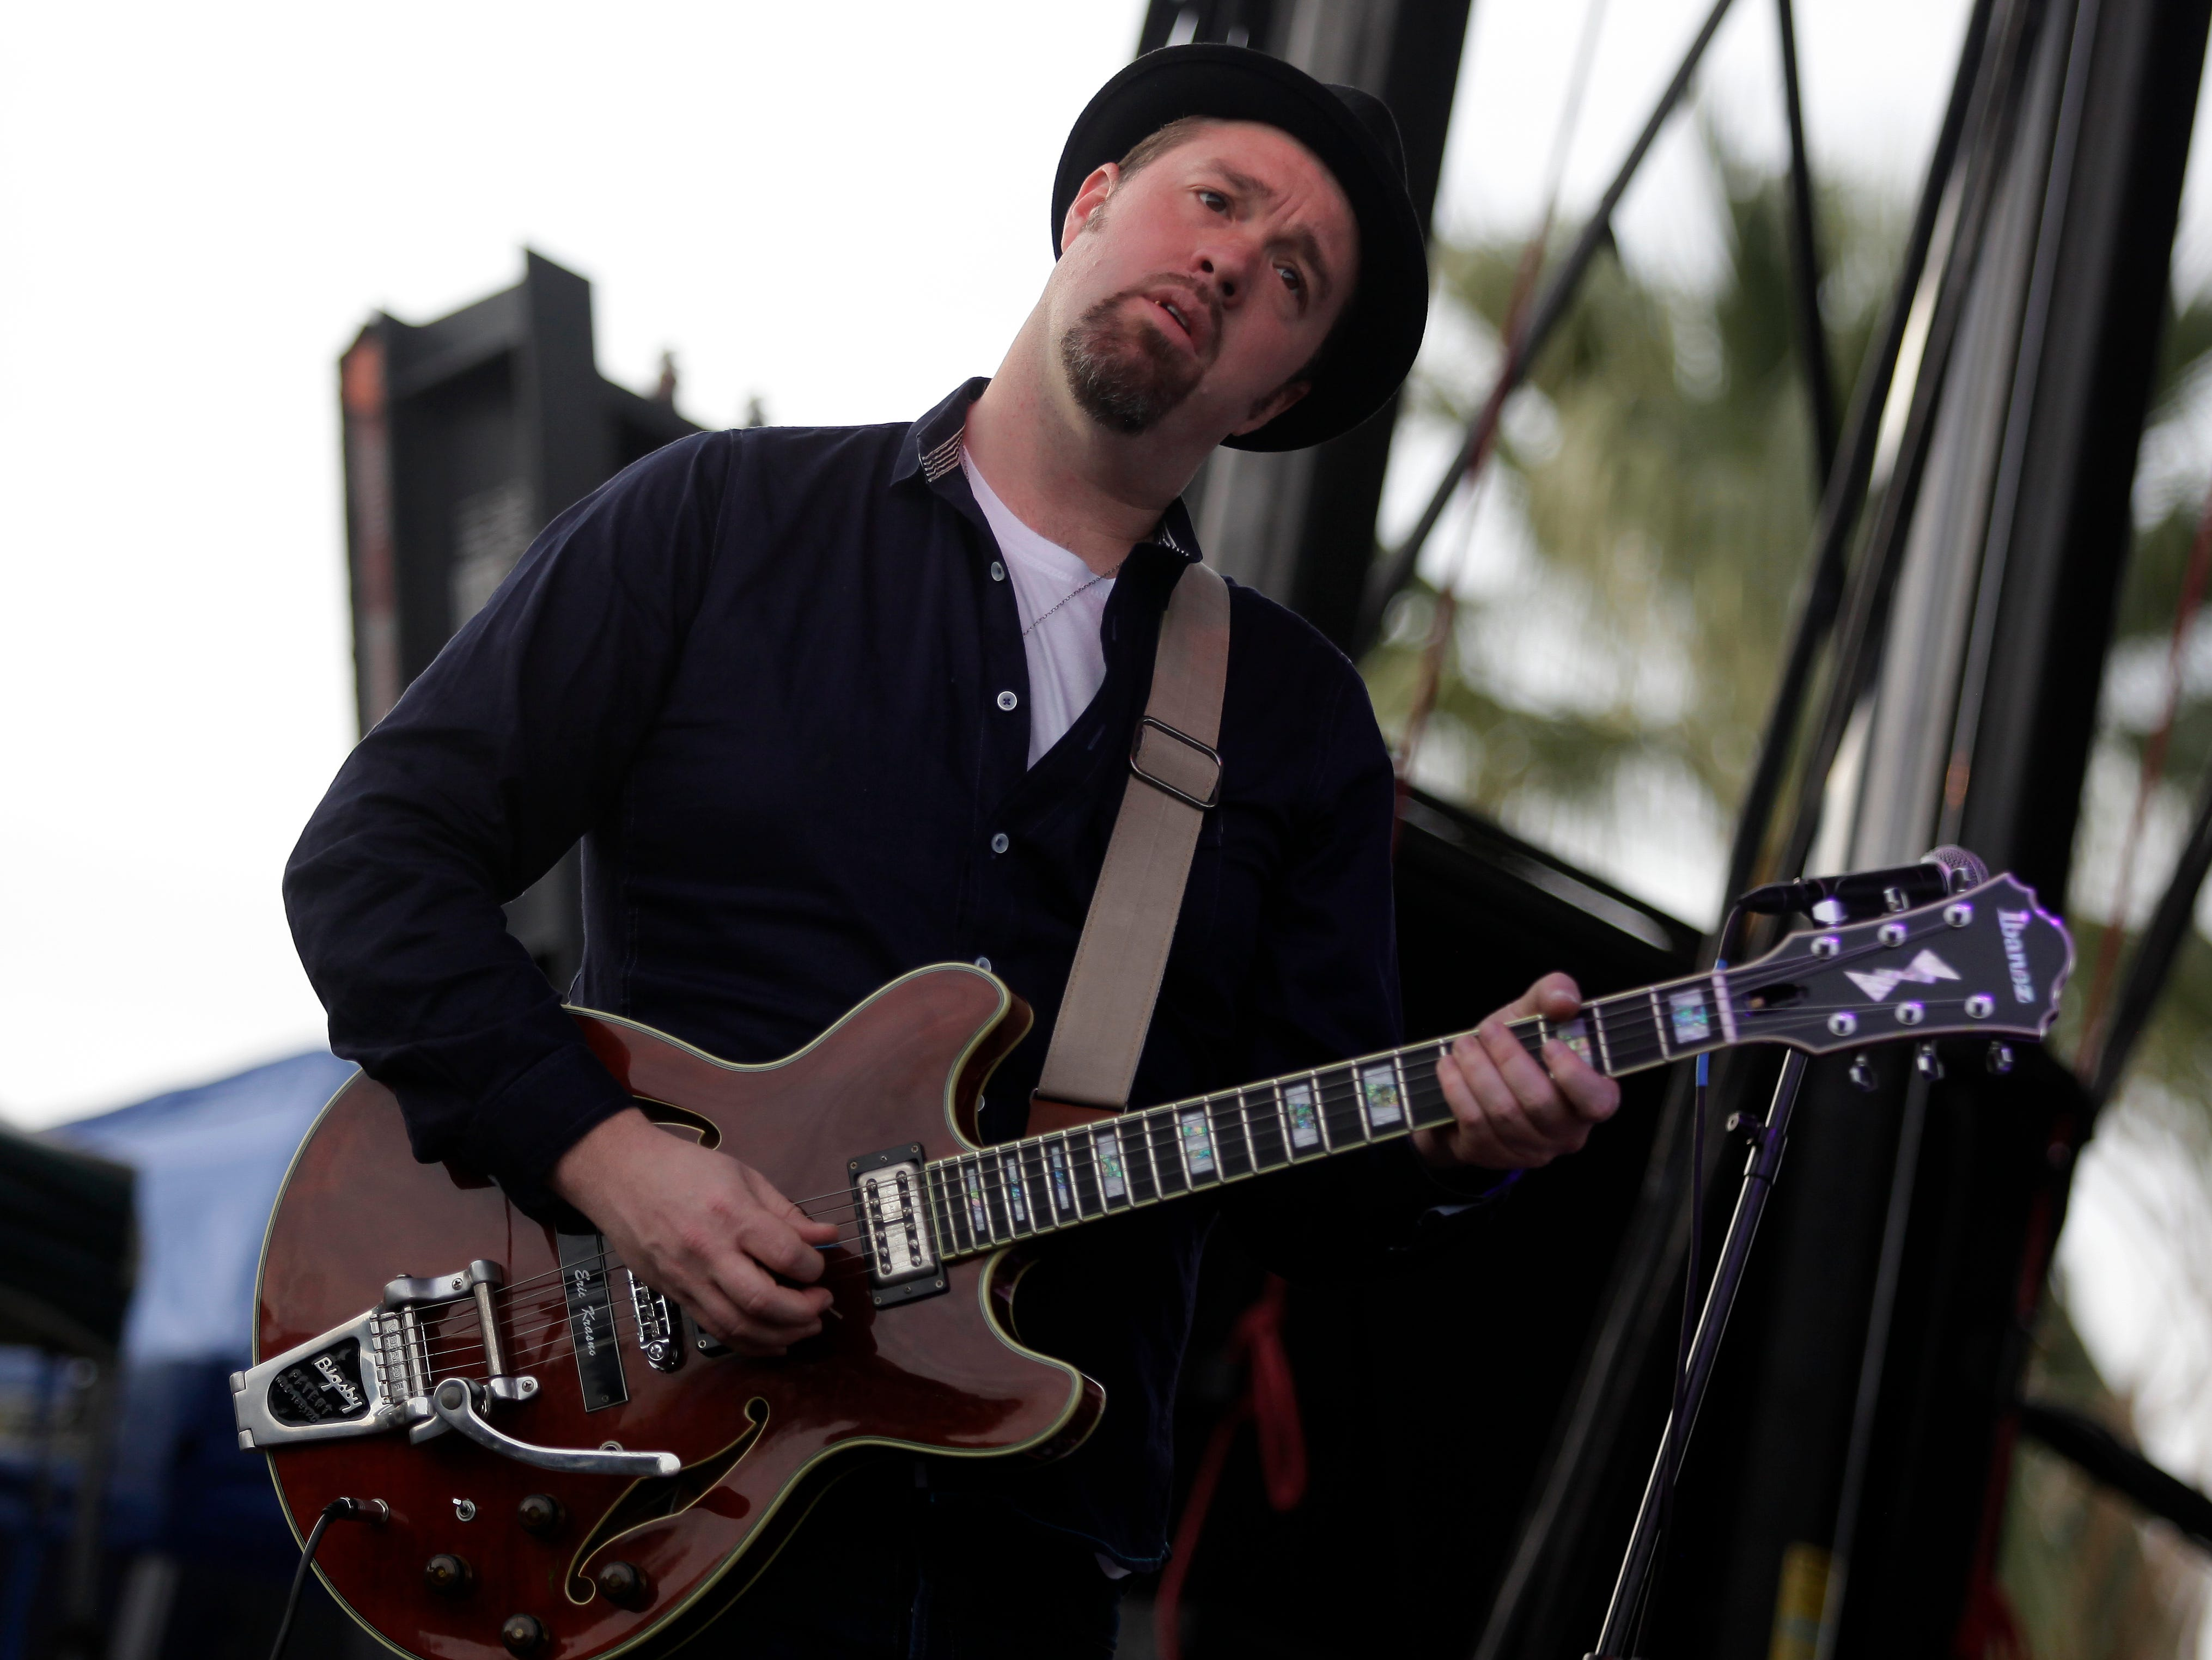 Eric Krasno of Lettuce performs at the McDowell Mountain Music Festival, on Friday, March, 28, 2014 in Phoenix, Arizona. (Photo by Rick Scuteri/Invision/AP)